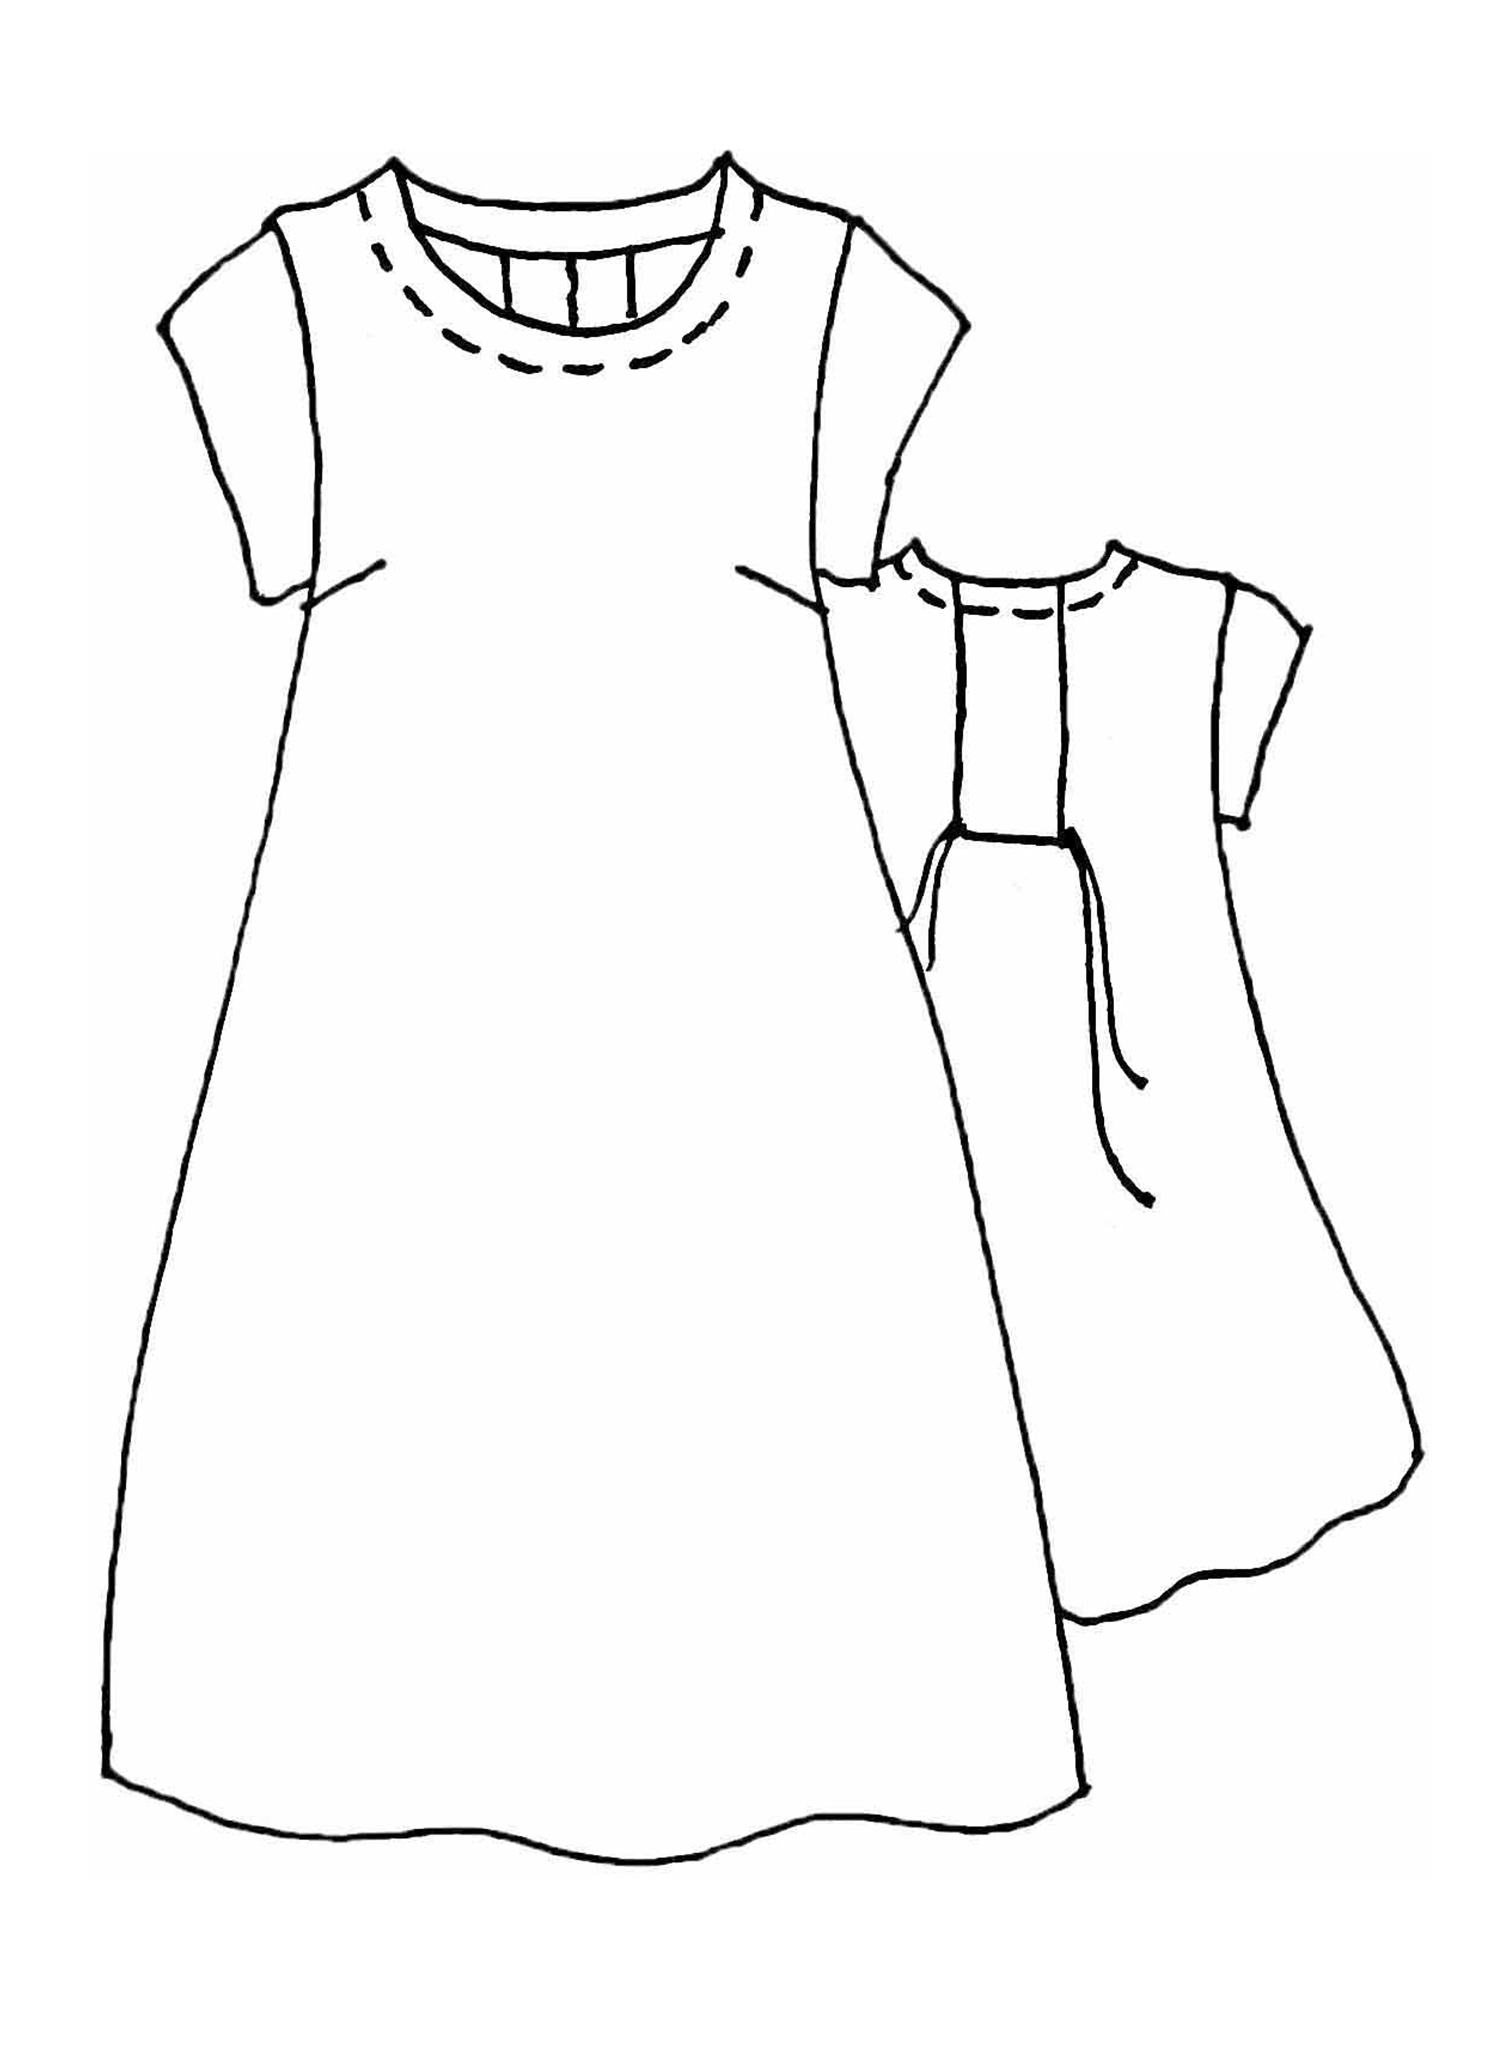 Tuck Back Dress sketch image